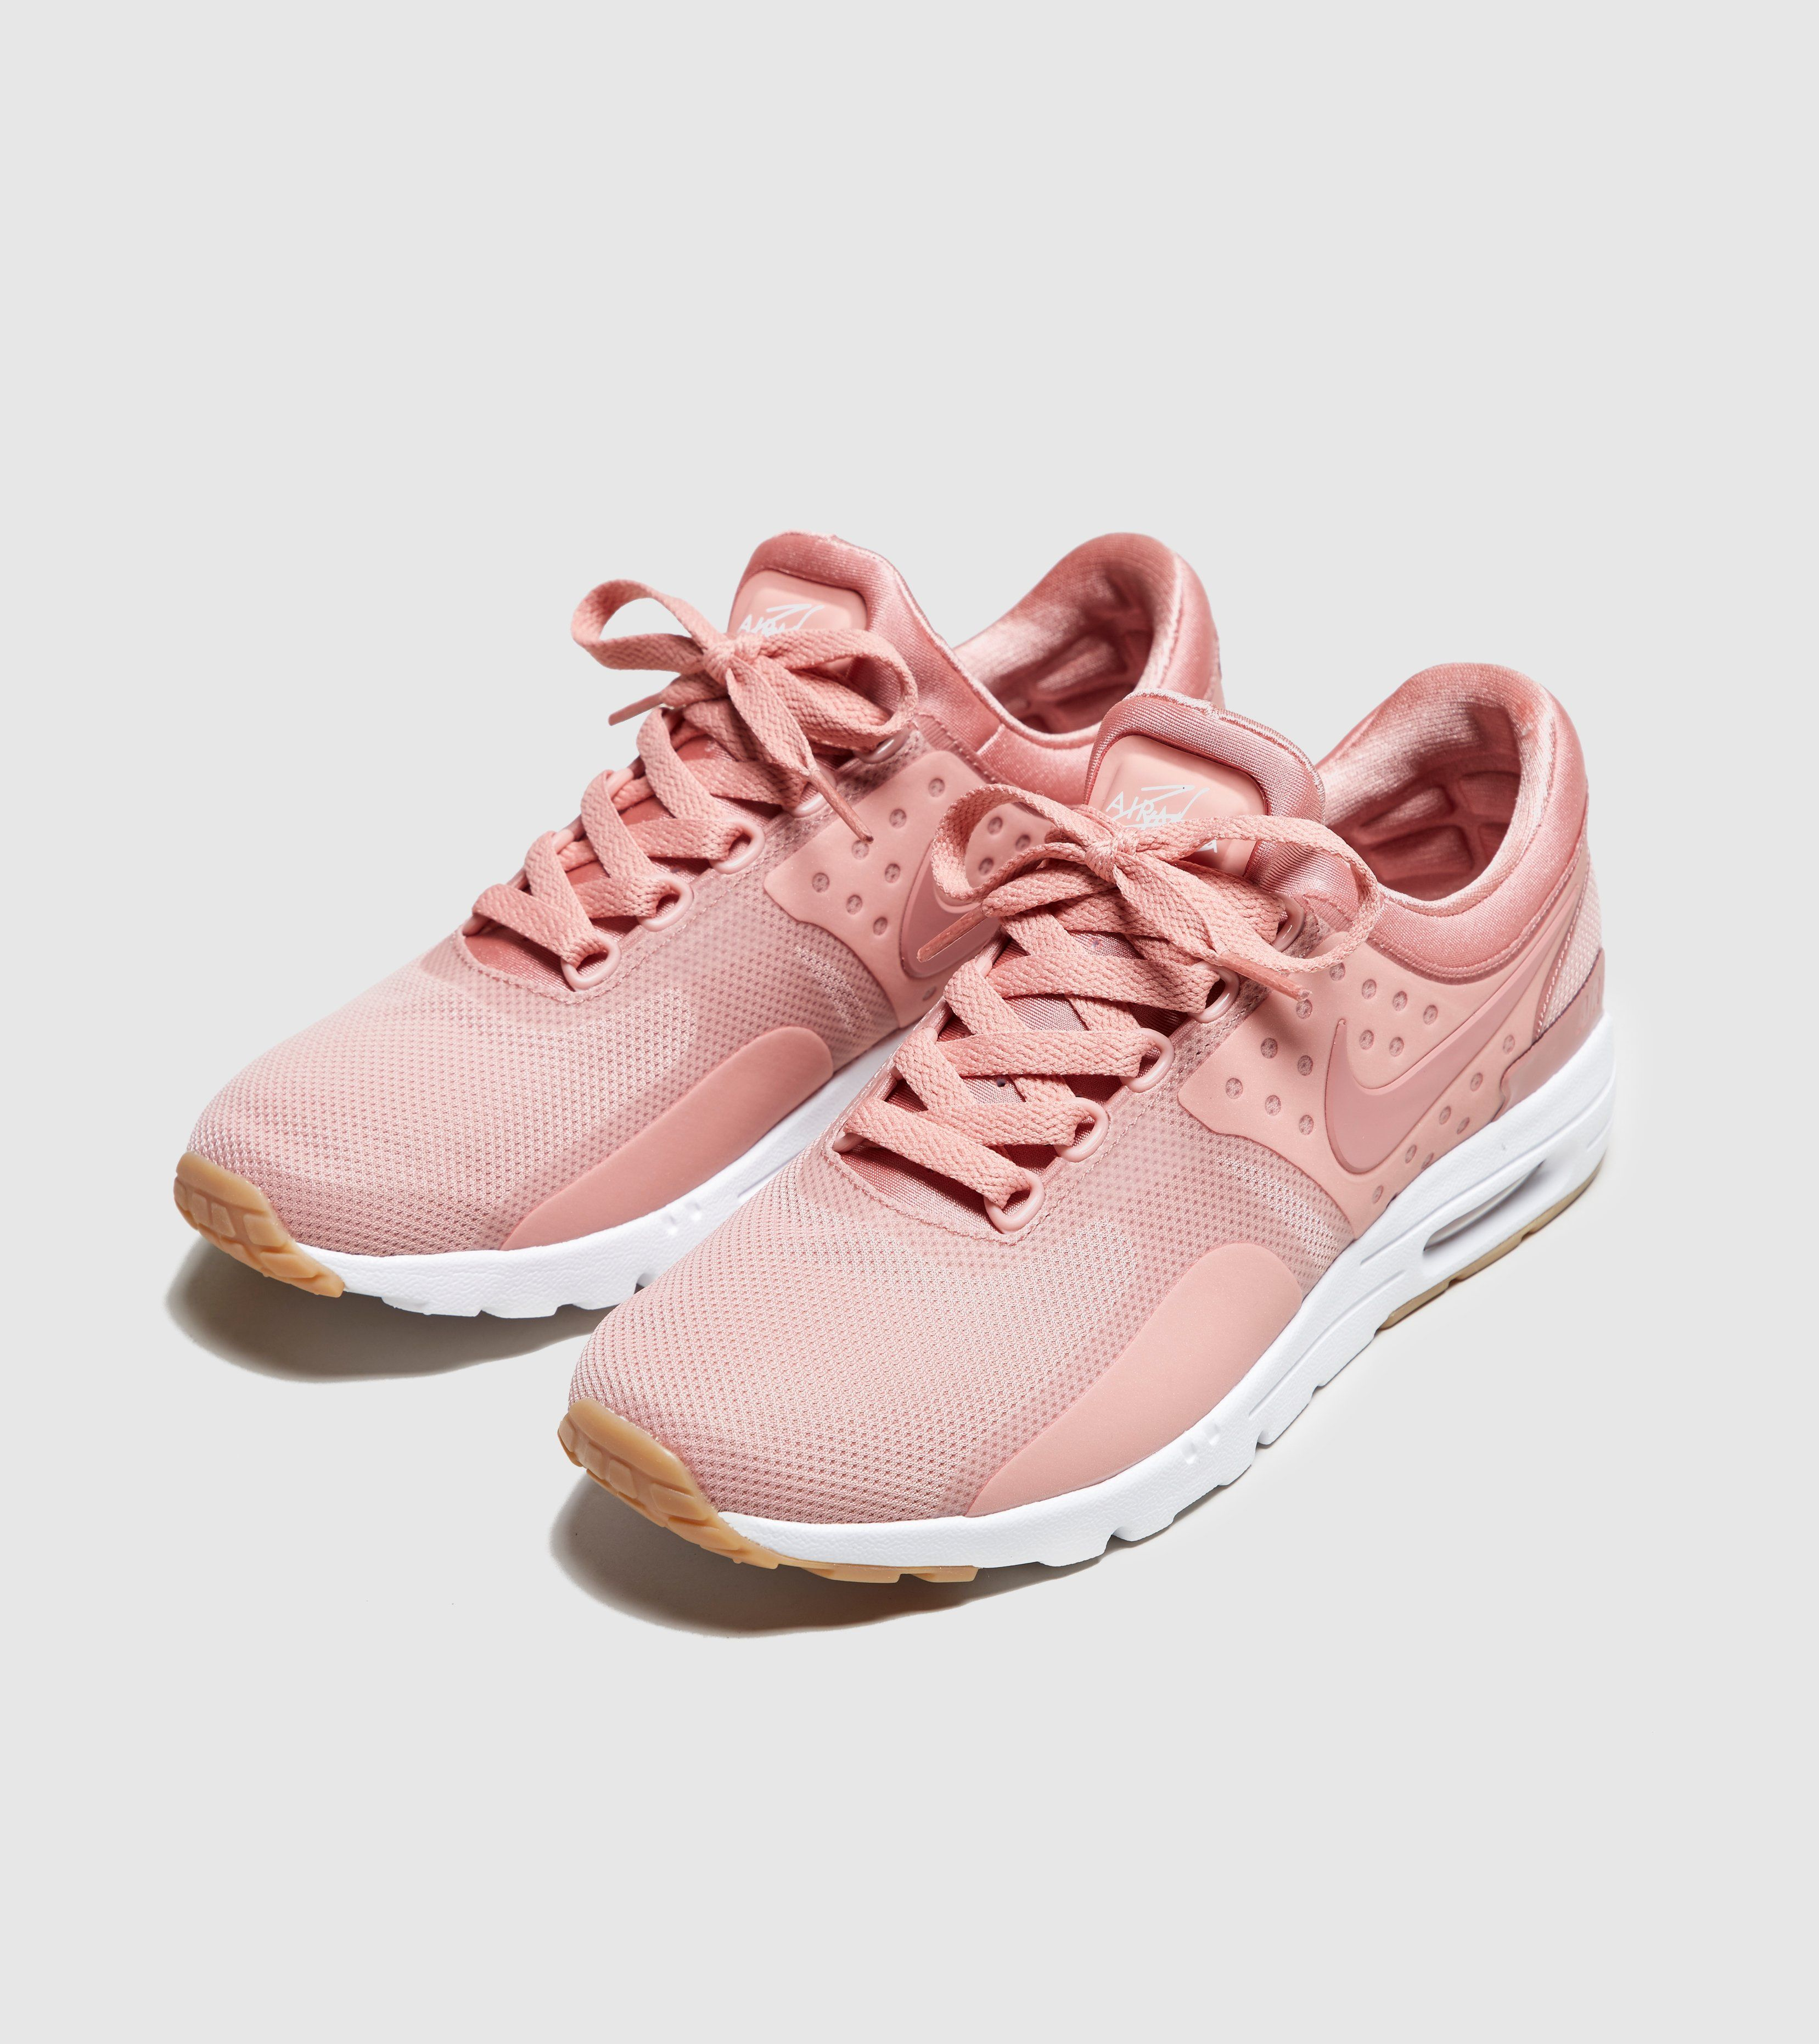 Nike Air Max Zero Women S Shoe Pink